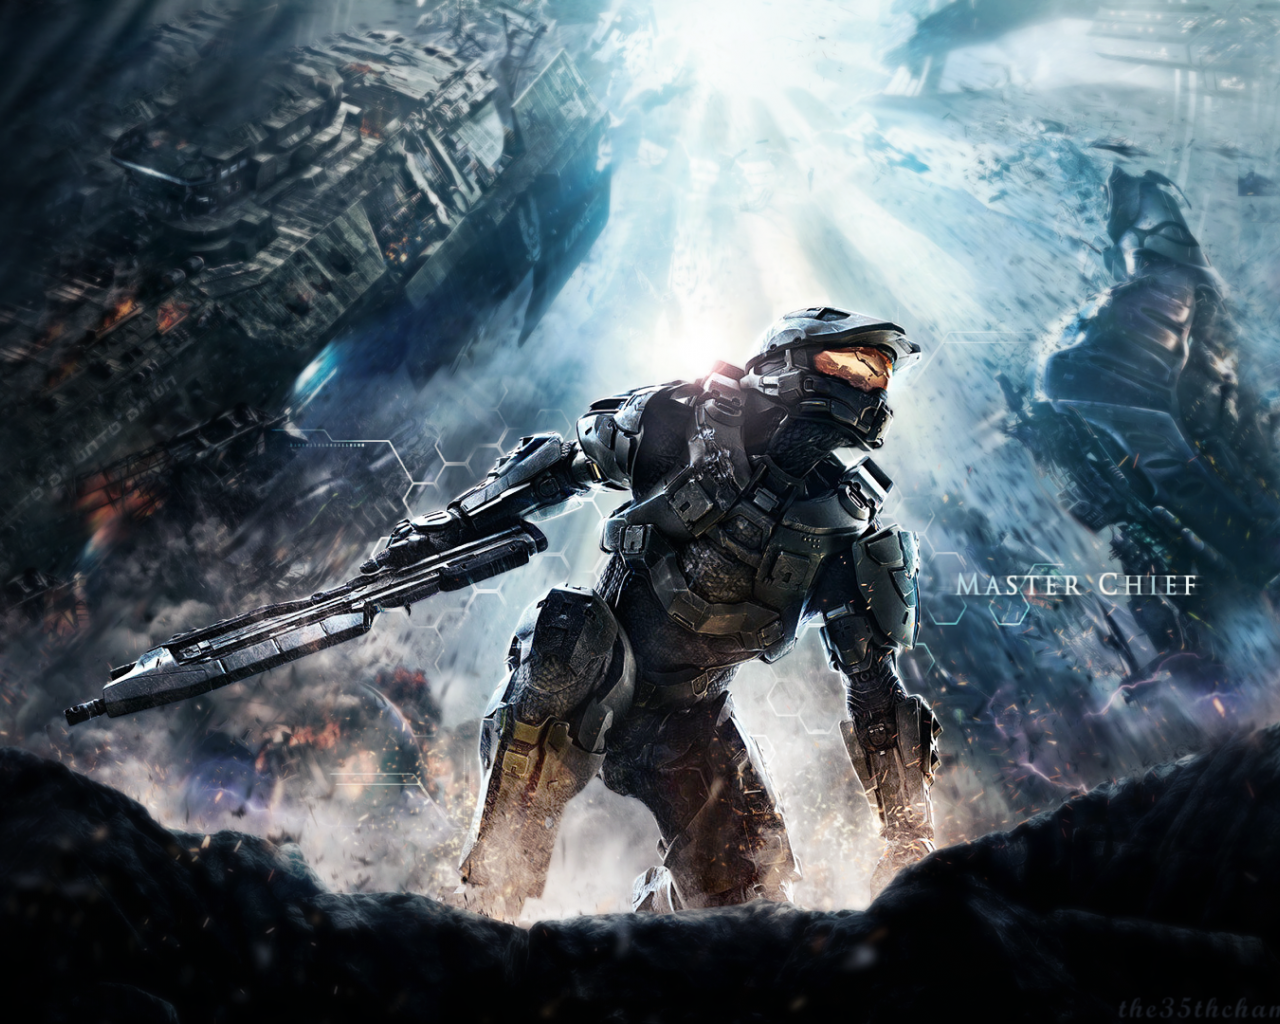 Free Download Halo 4 Master Chief Wallpaper 137362 1920x1080 For